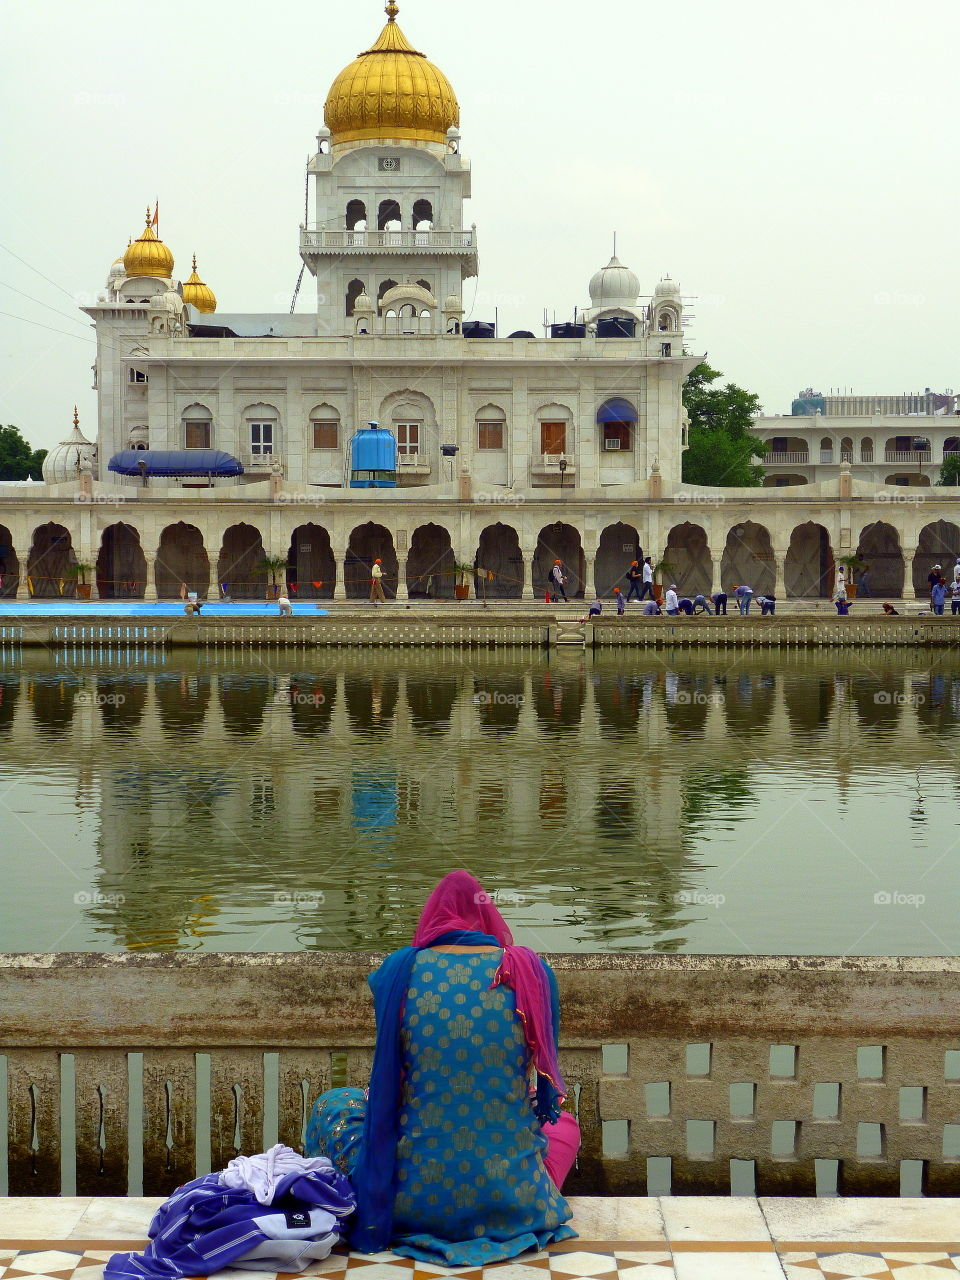 sitting near the water in front of the indian temple